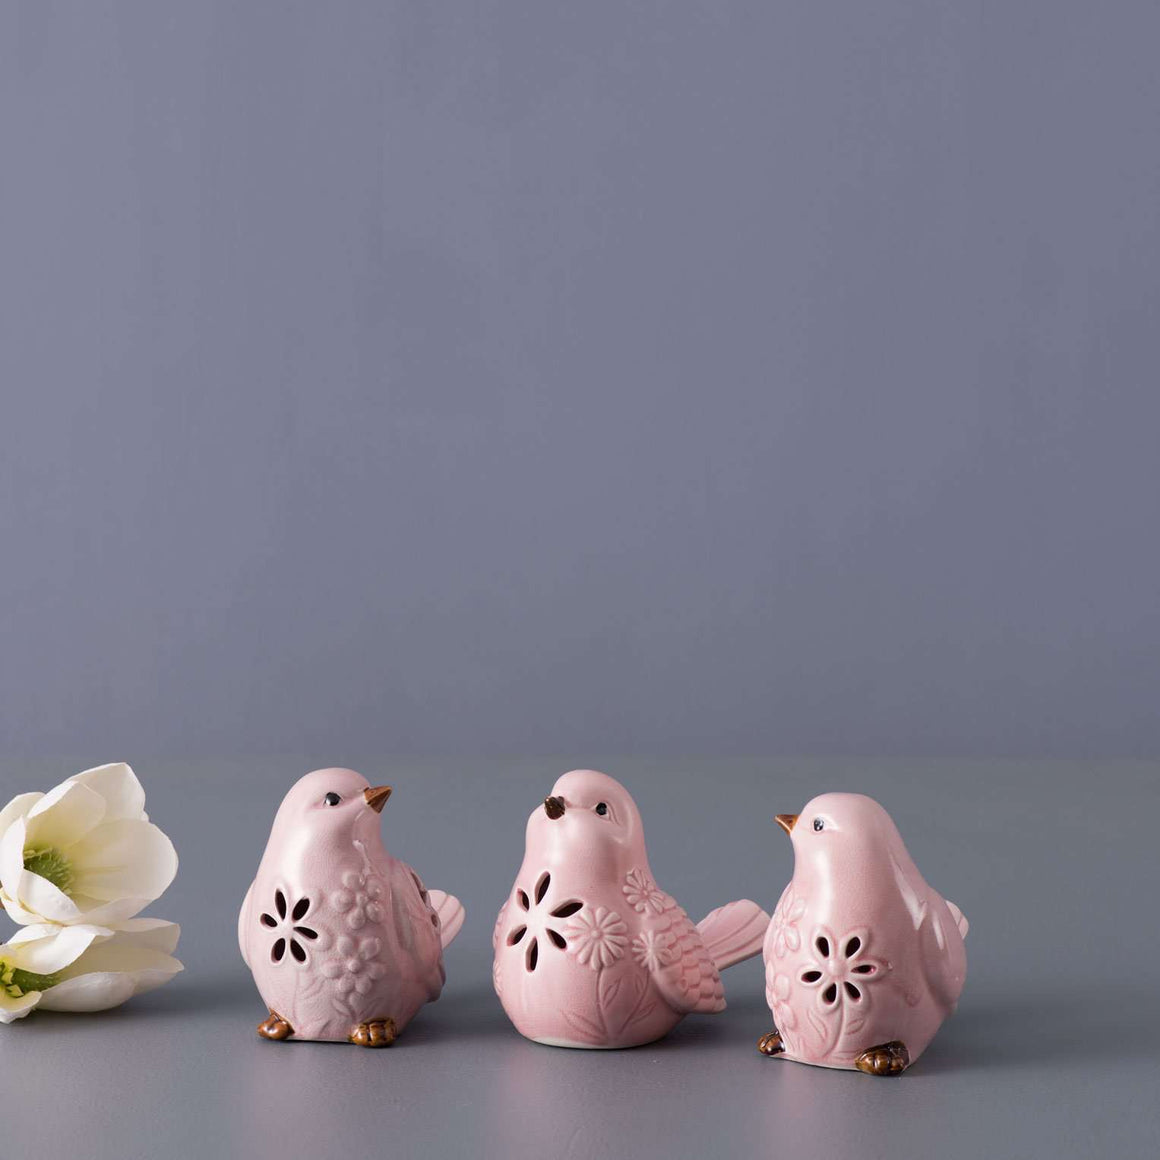 Set of 3 Cutout Bird Figurines - Pink